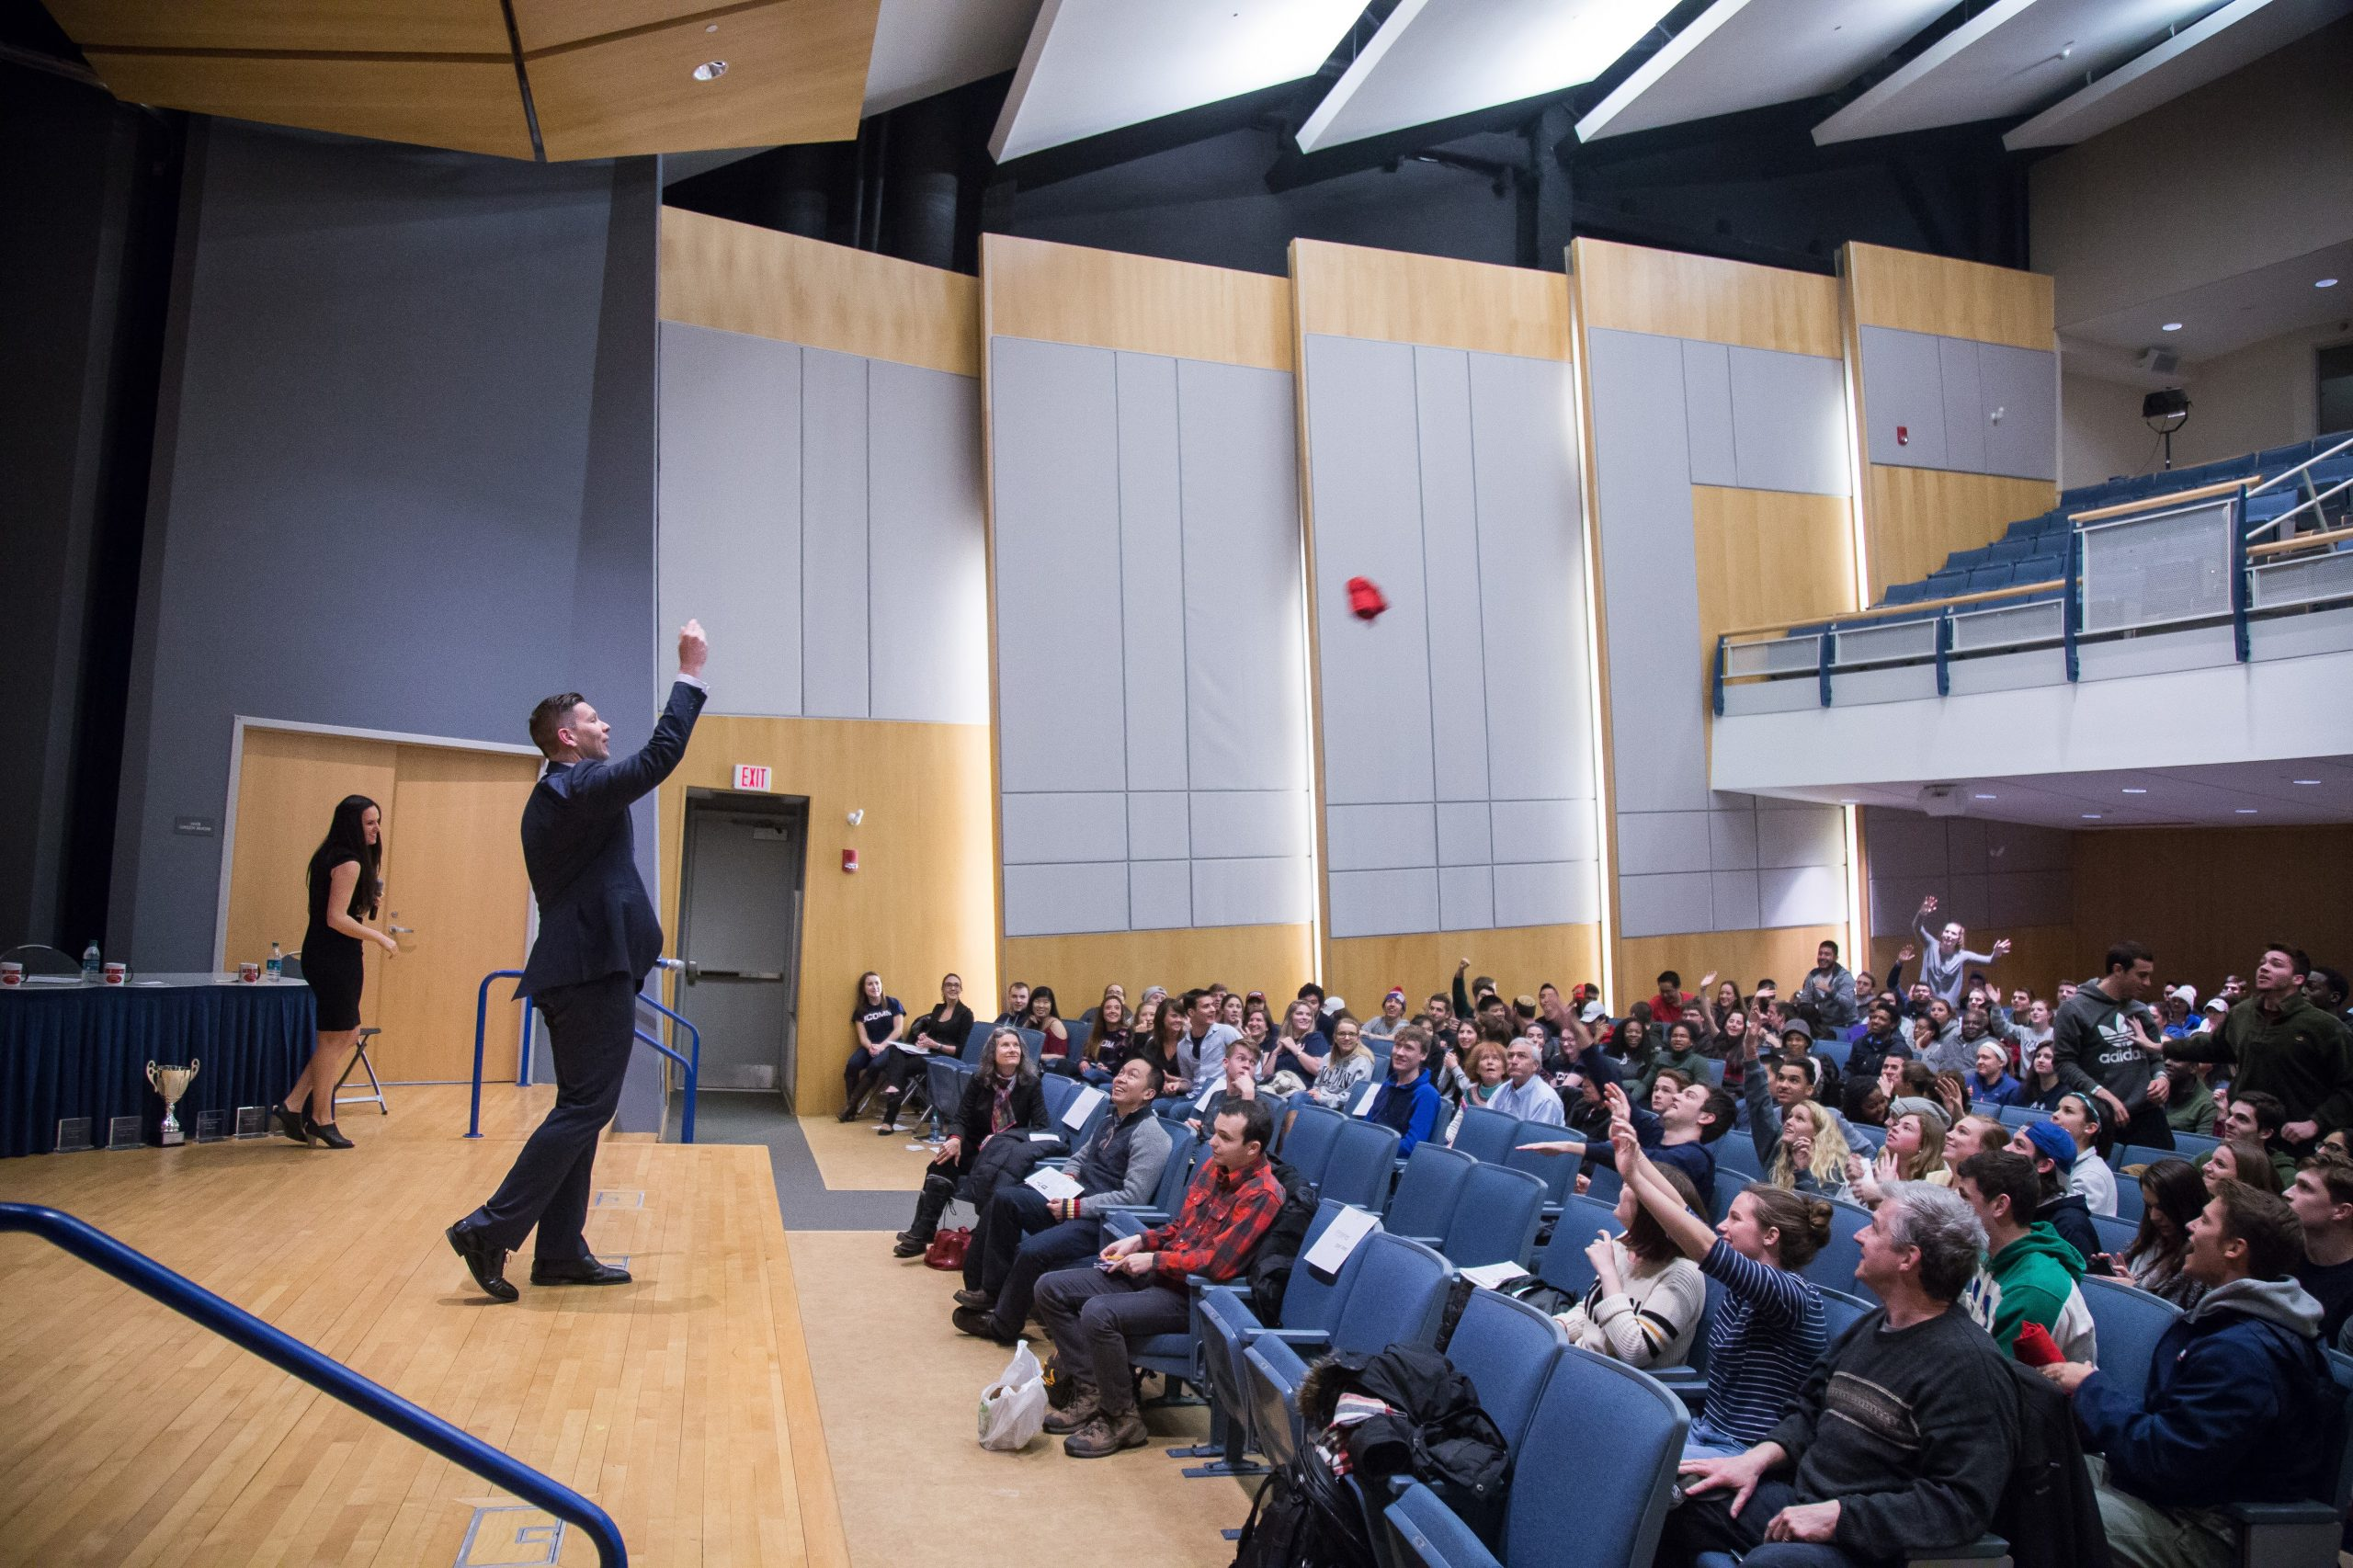 Rory McGloin, associate professor of communication, speaks on stage to an audience.